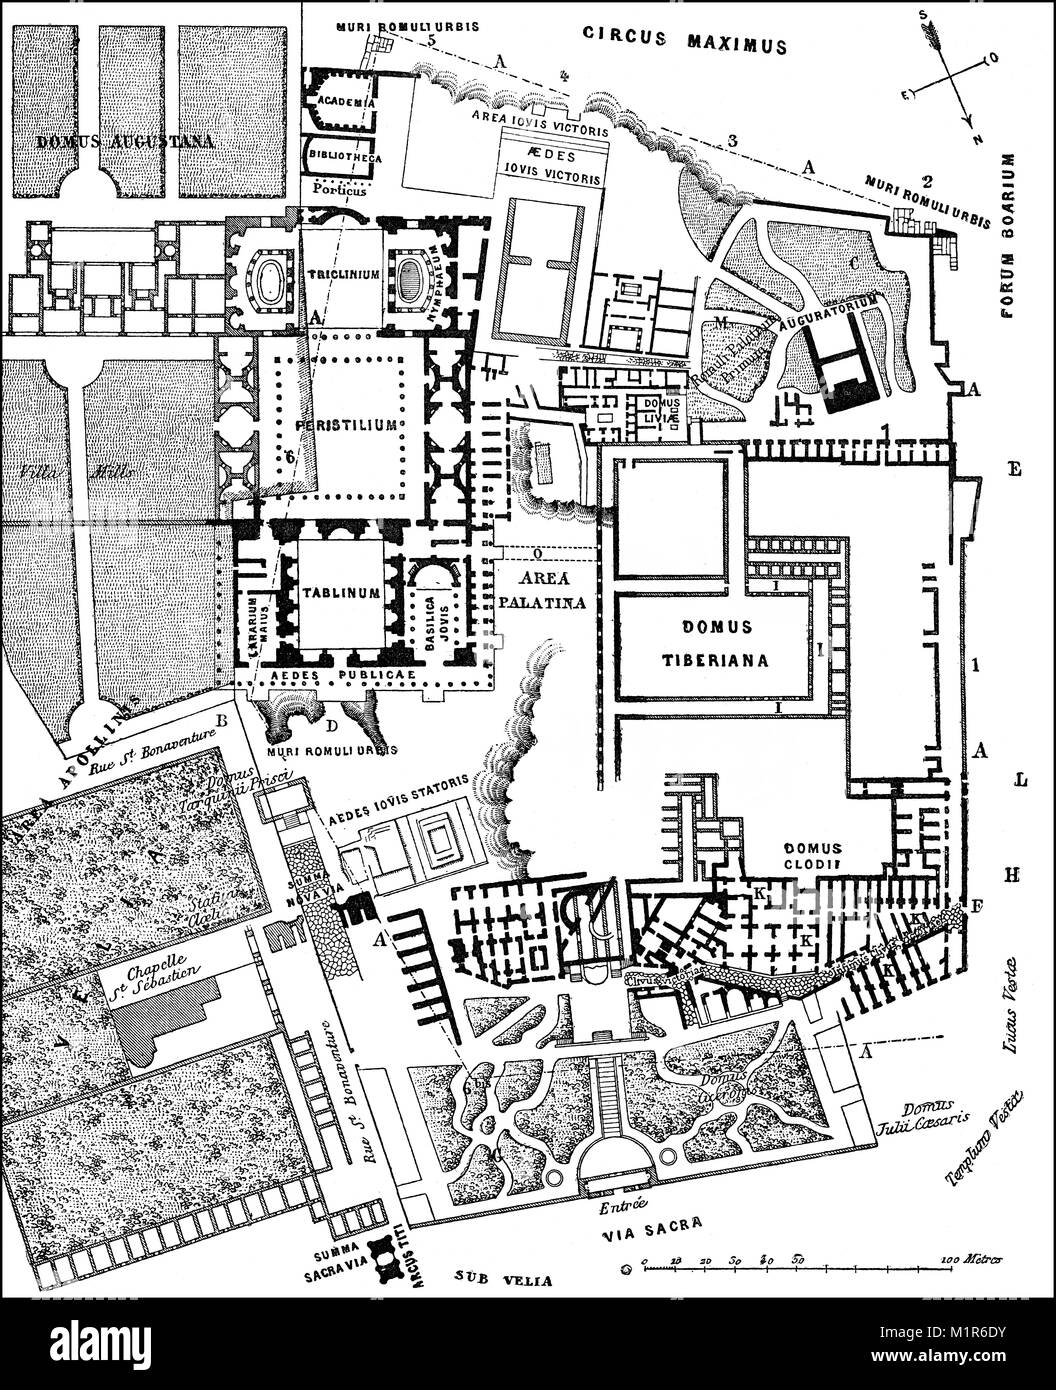 Plan of the excavations at Palatine Hill, Rome, Italy, 19th Century - Stock Image